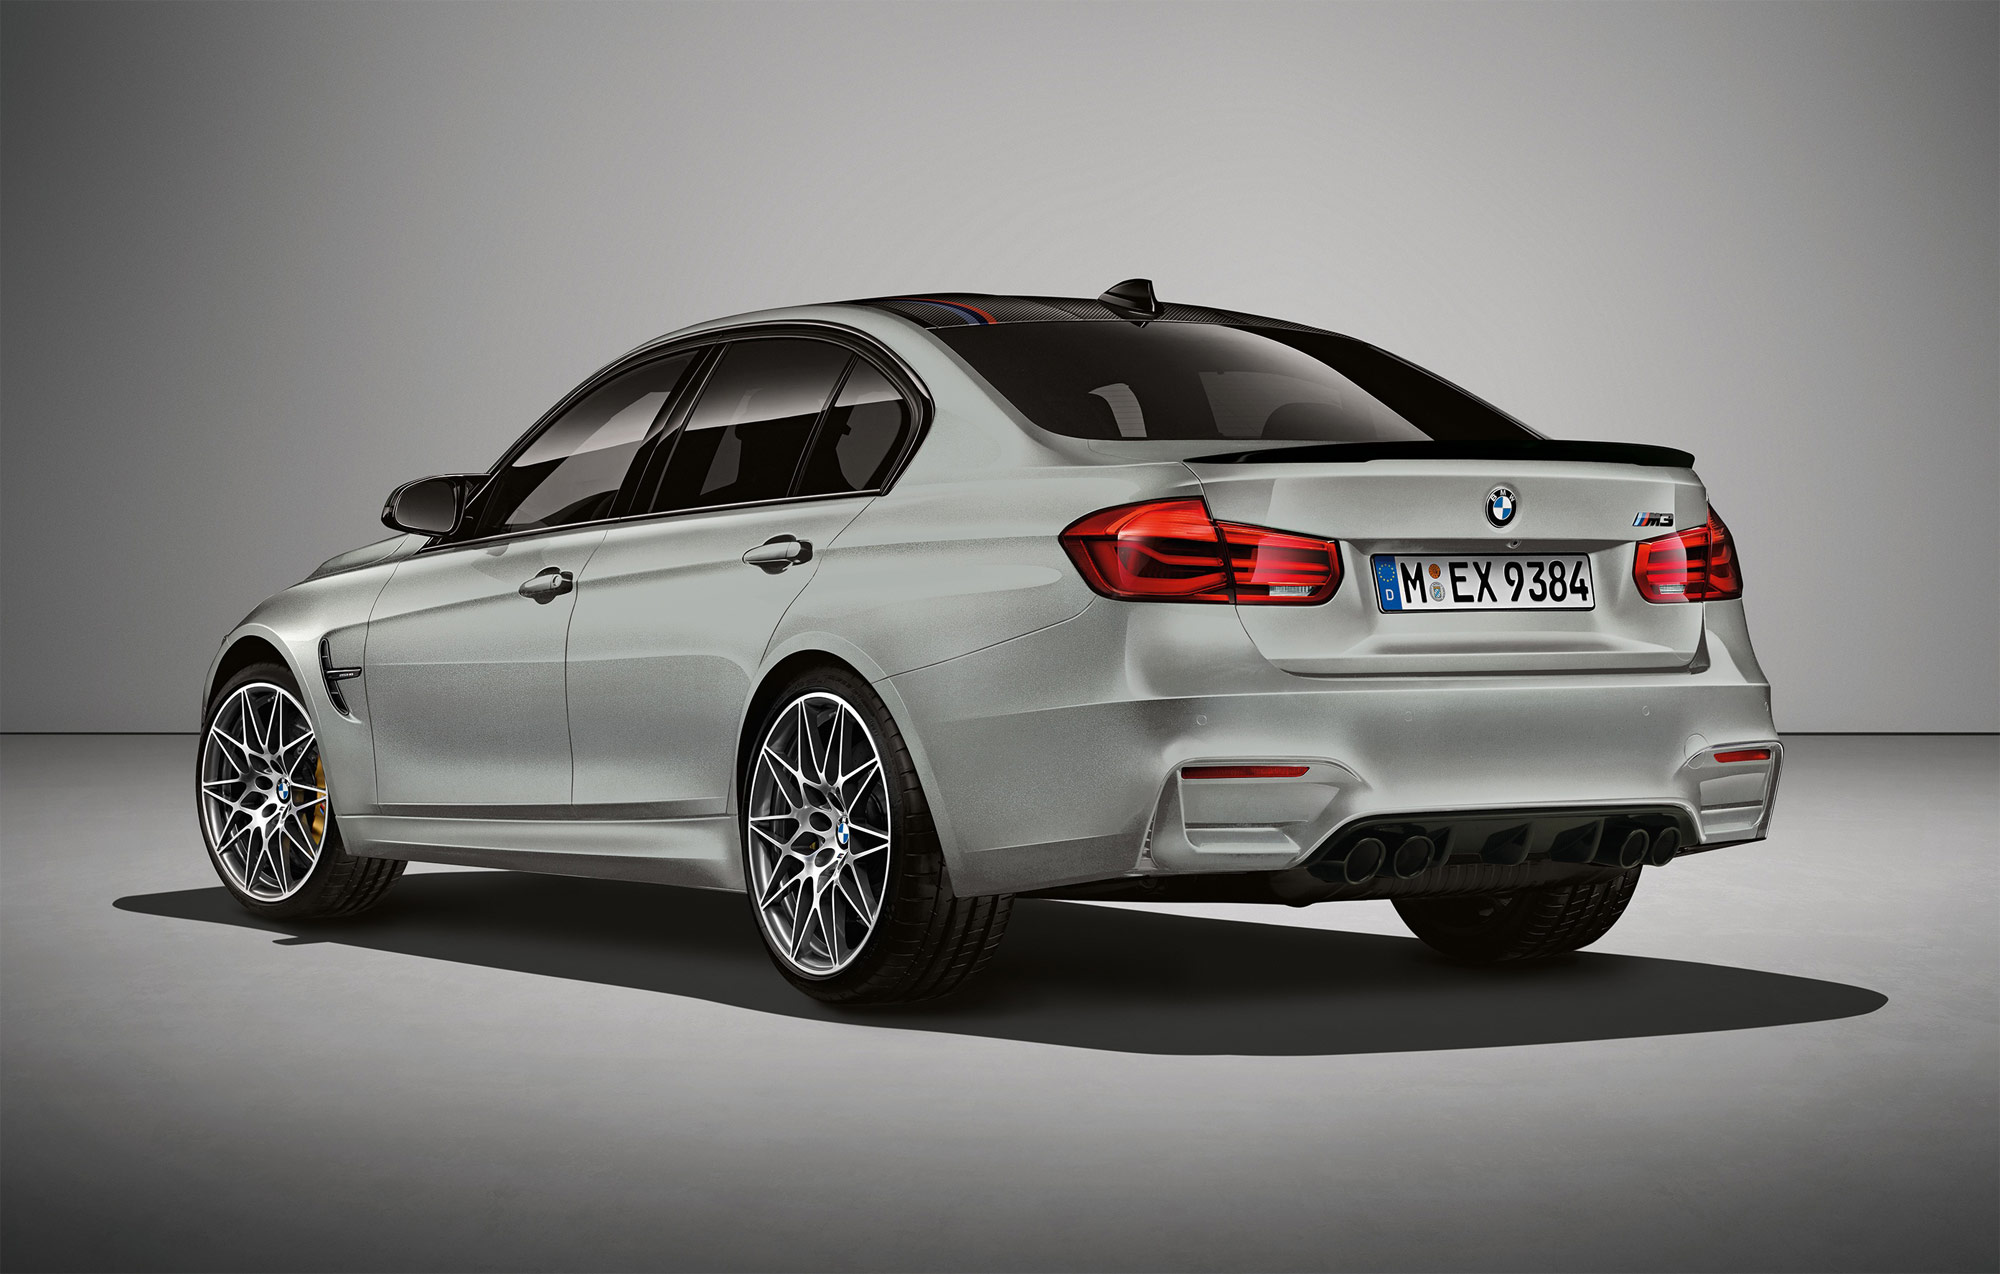 The BMW M3 30 Jahre Edition - Celebrating 30 Years Of Brilliance 8